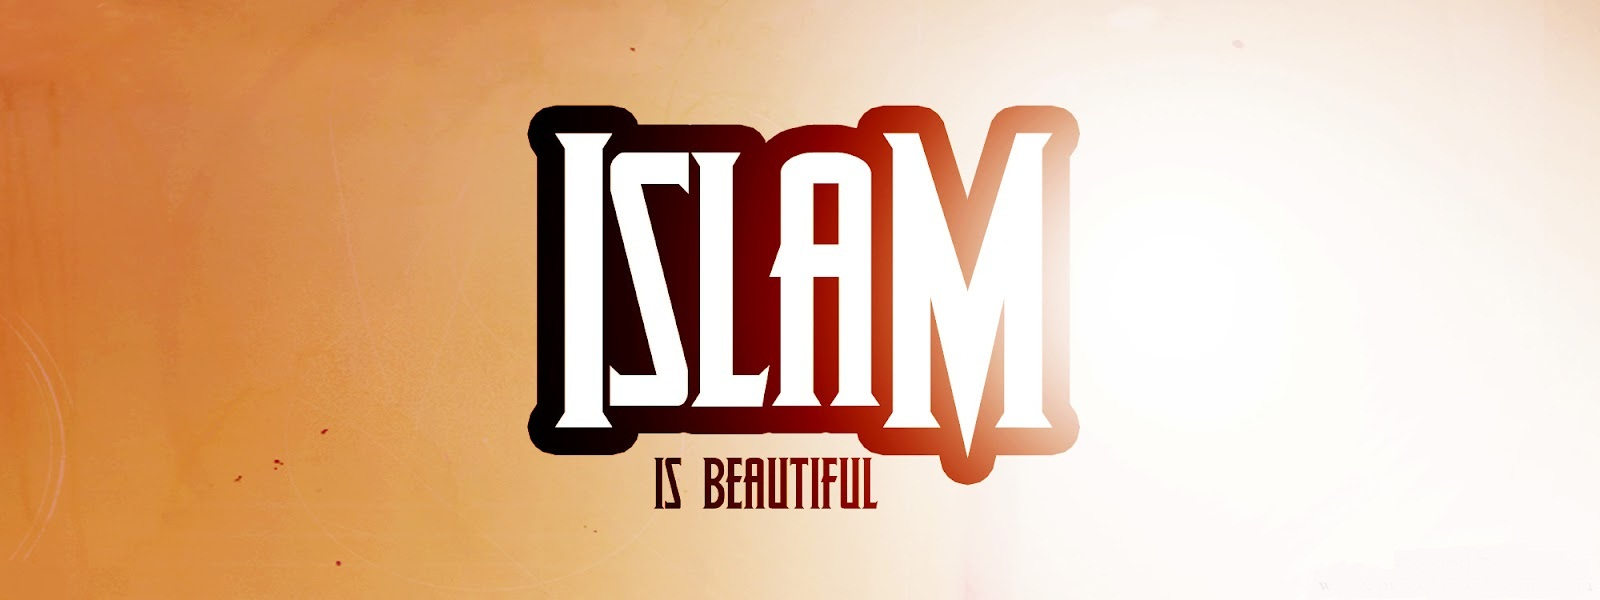 Islamic Facebook Covers